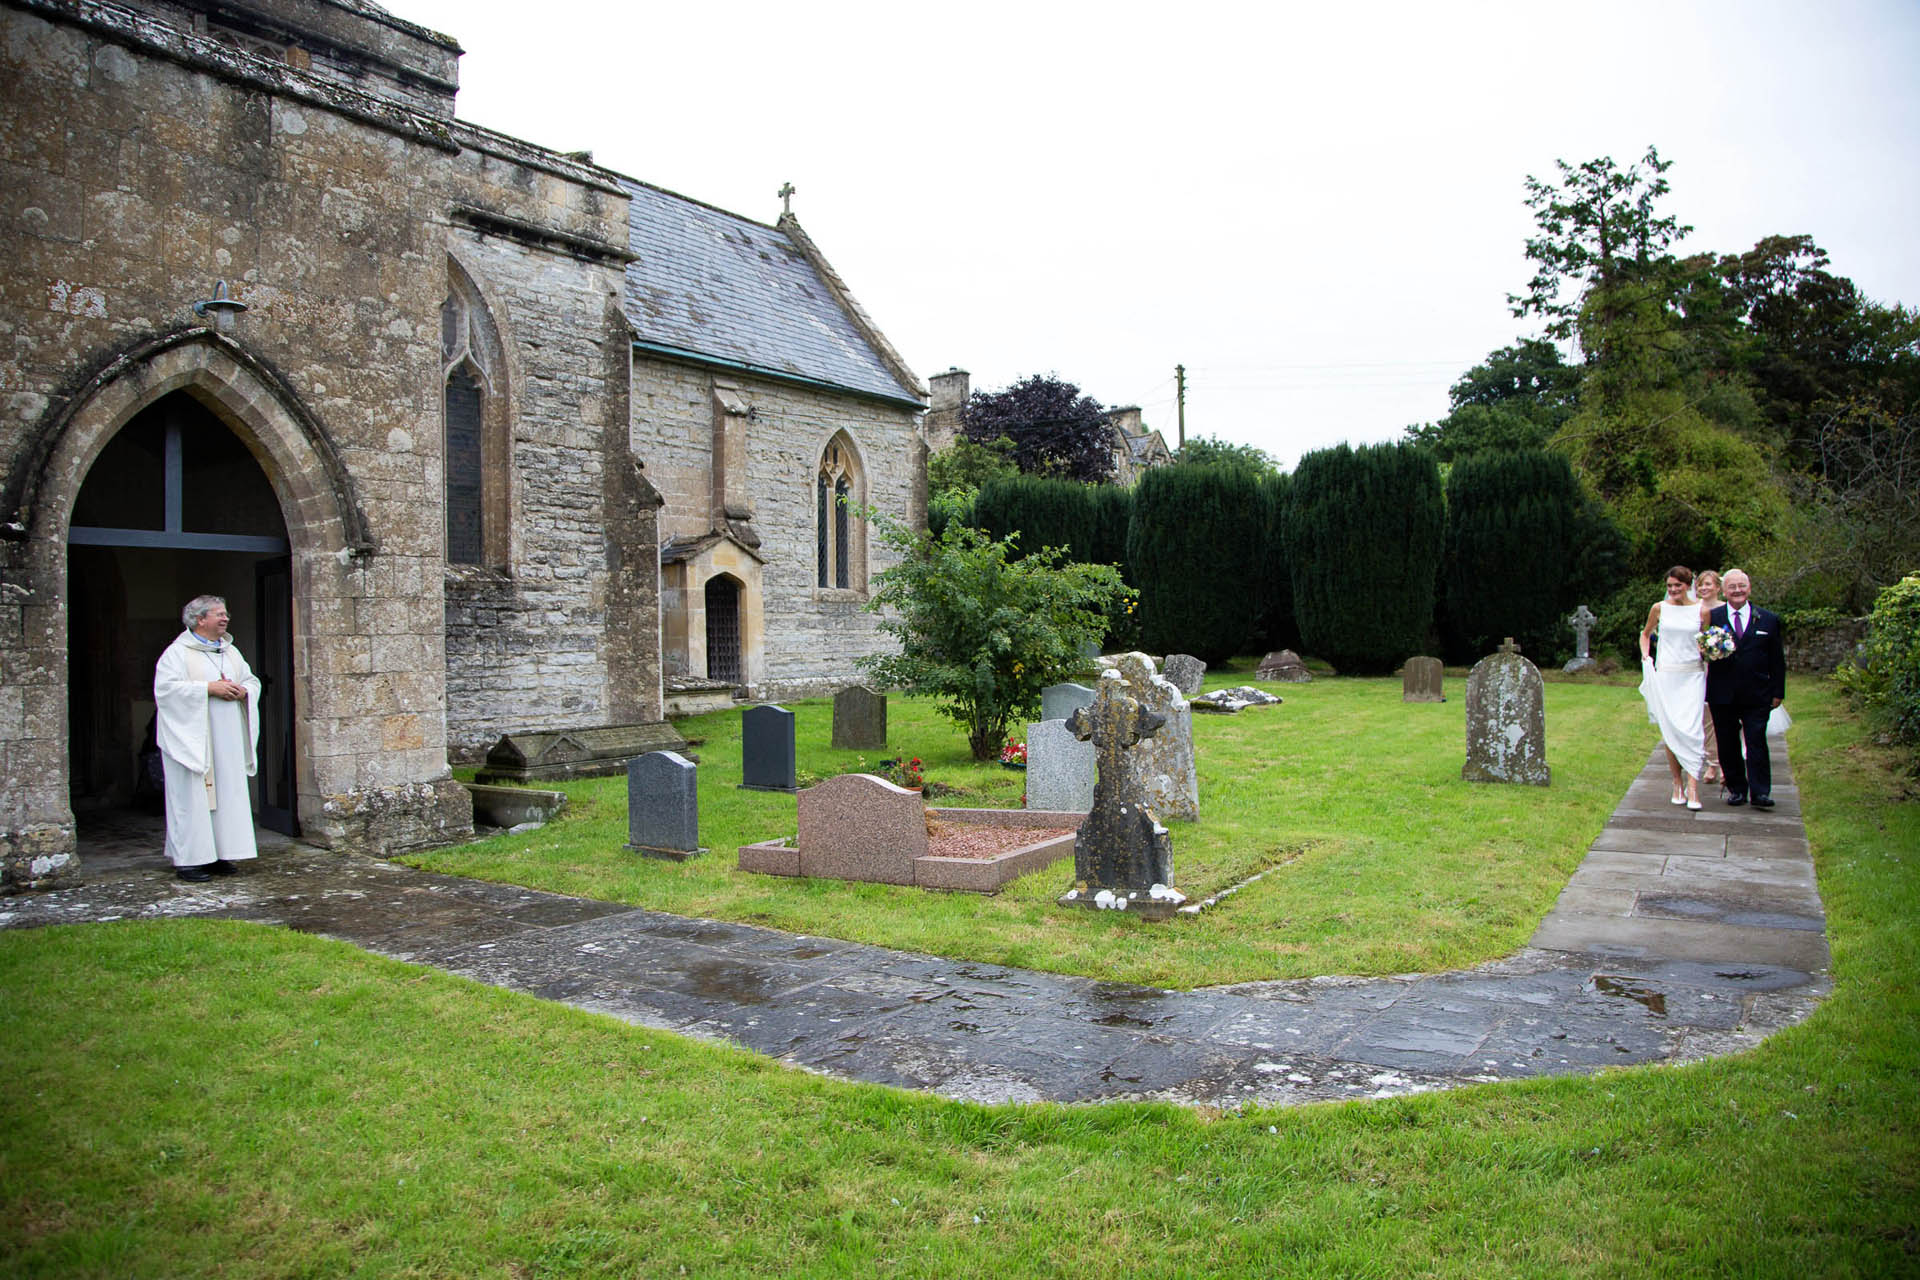 The Church of All Saints in East Pennard